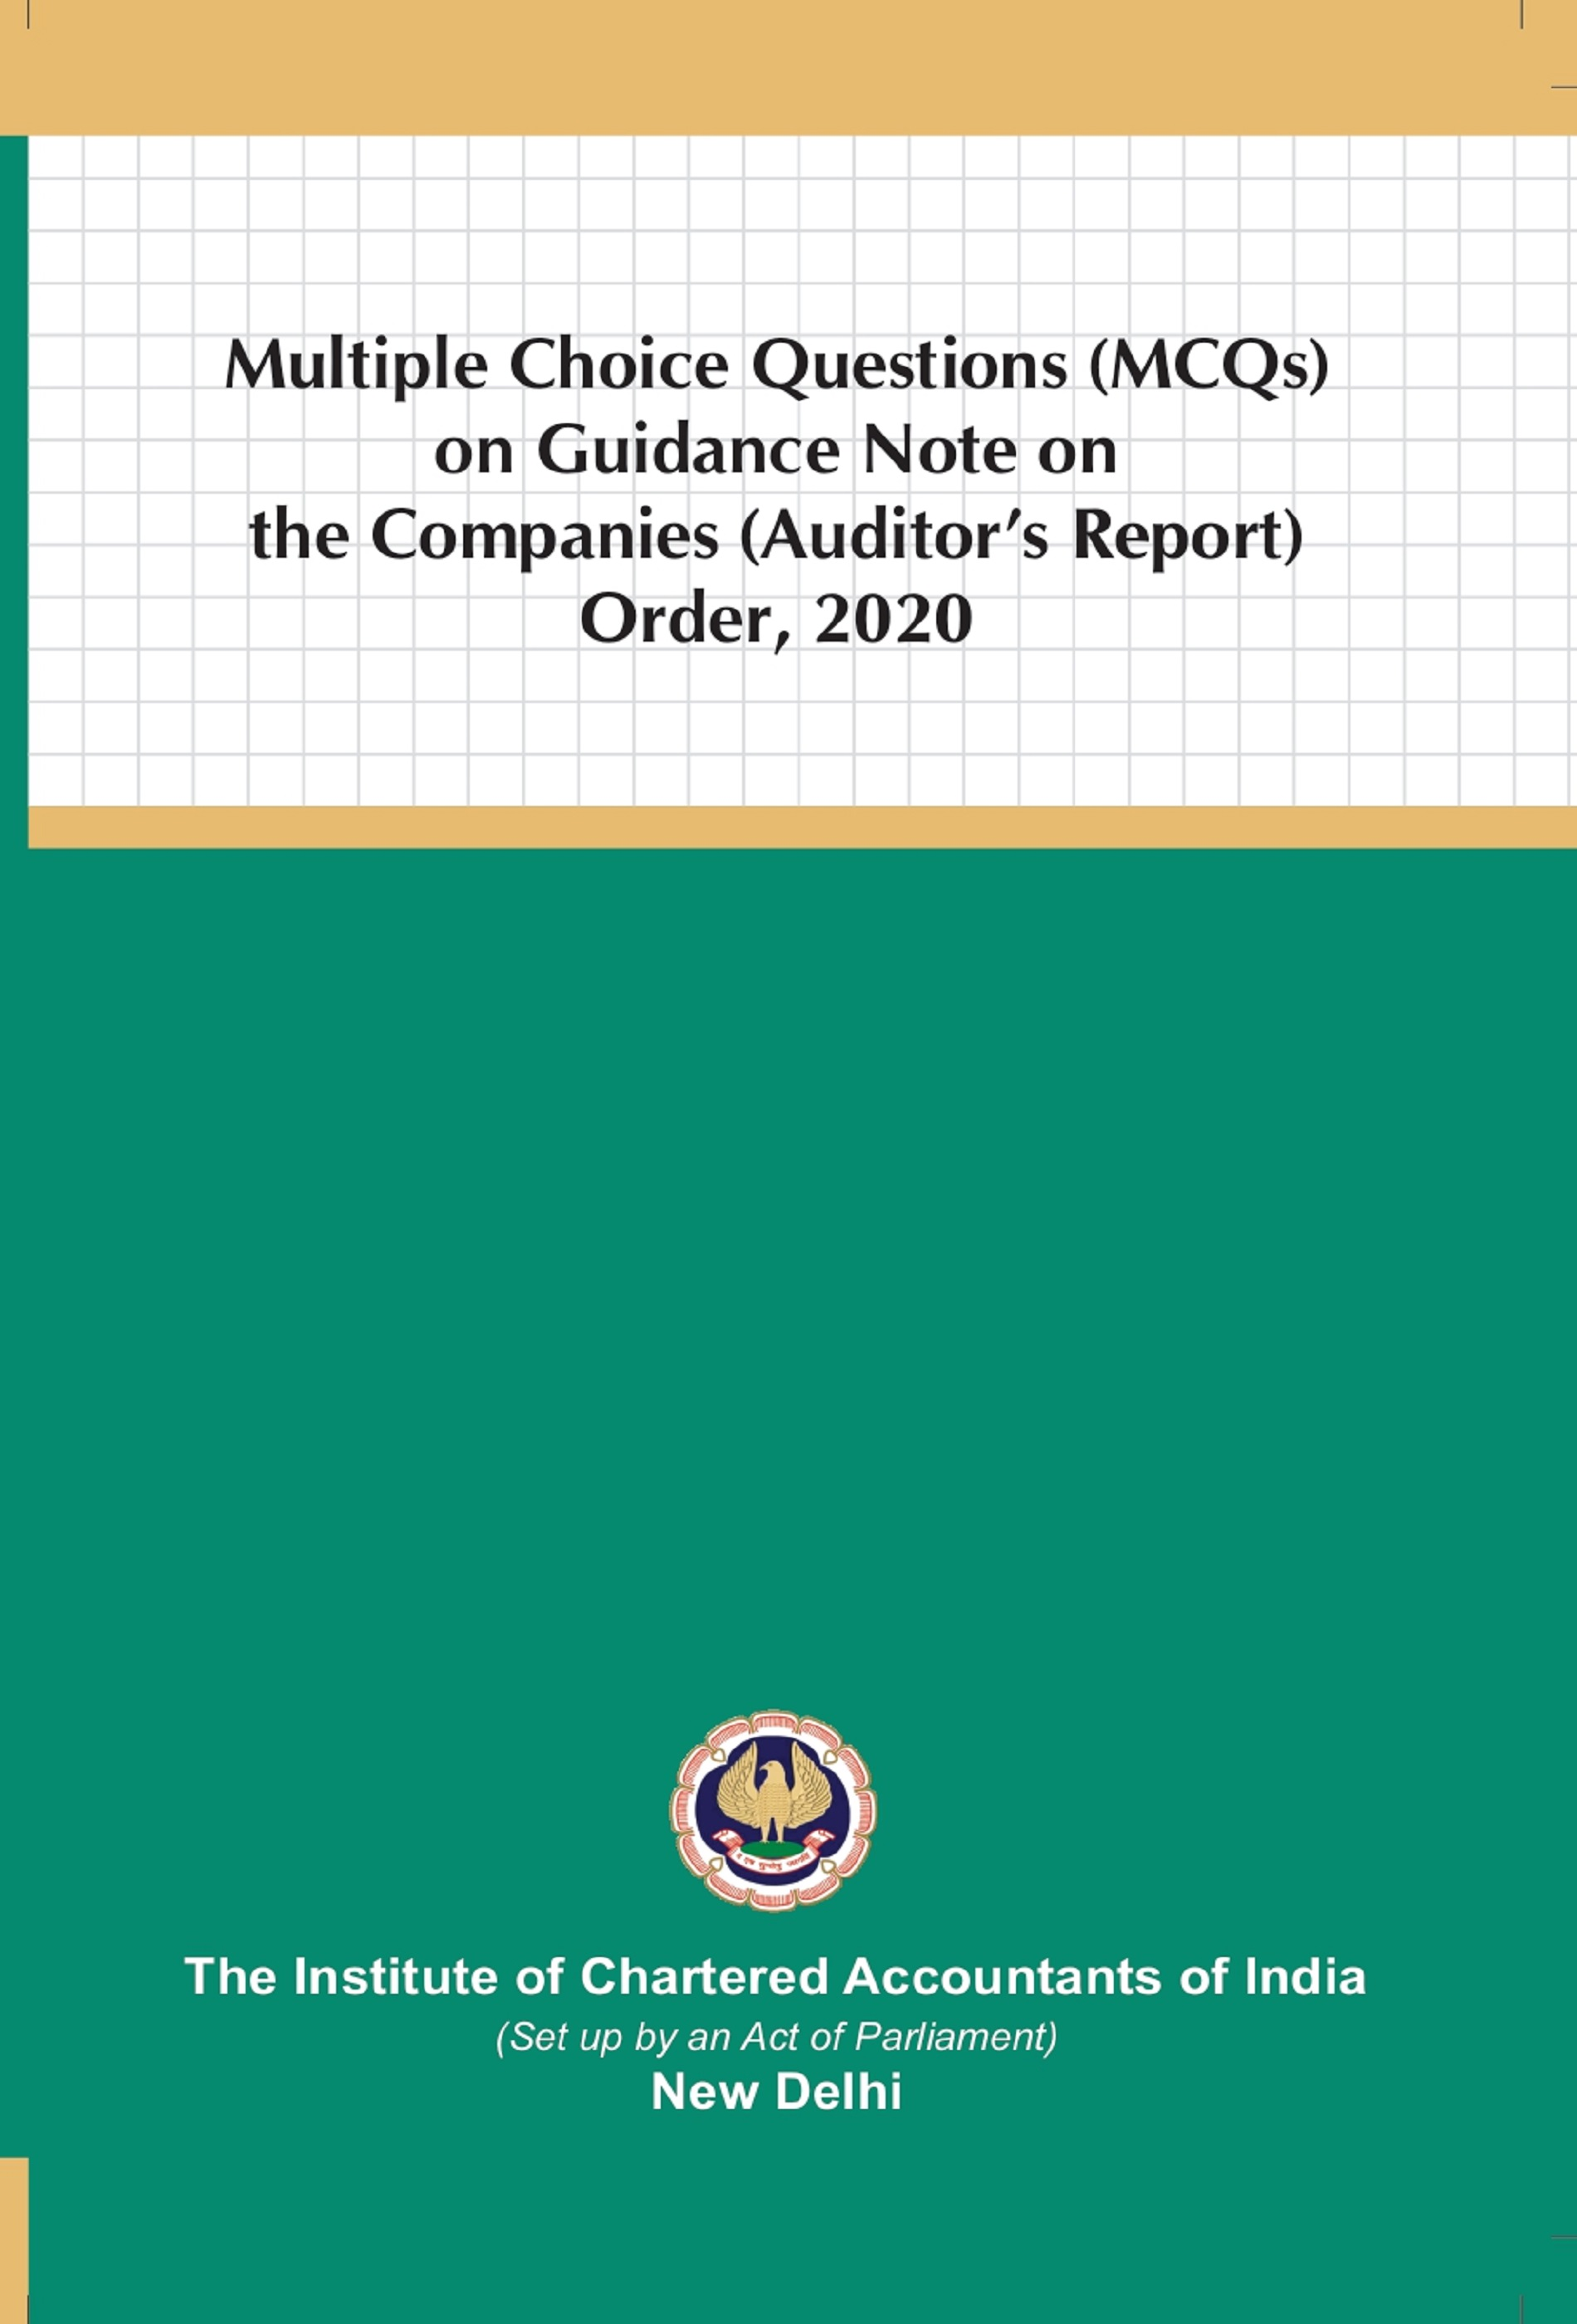 Multiple Choice Questions (MCQs) on Guidance Note on the Companies (Auditor's Report) Order, 2020